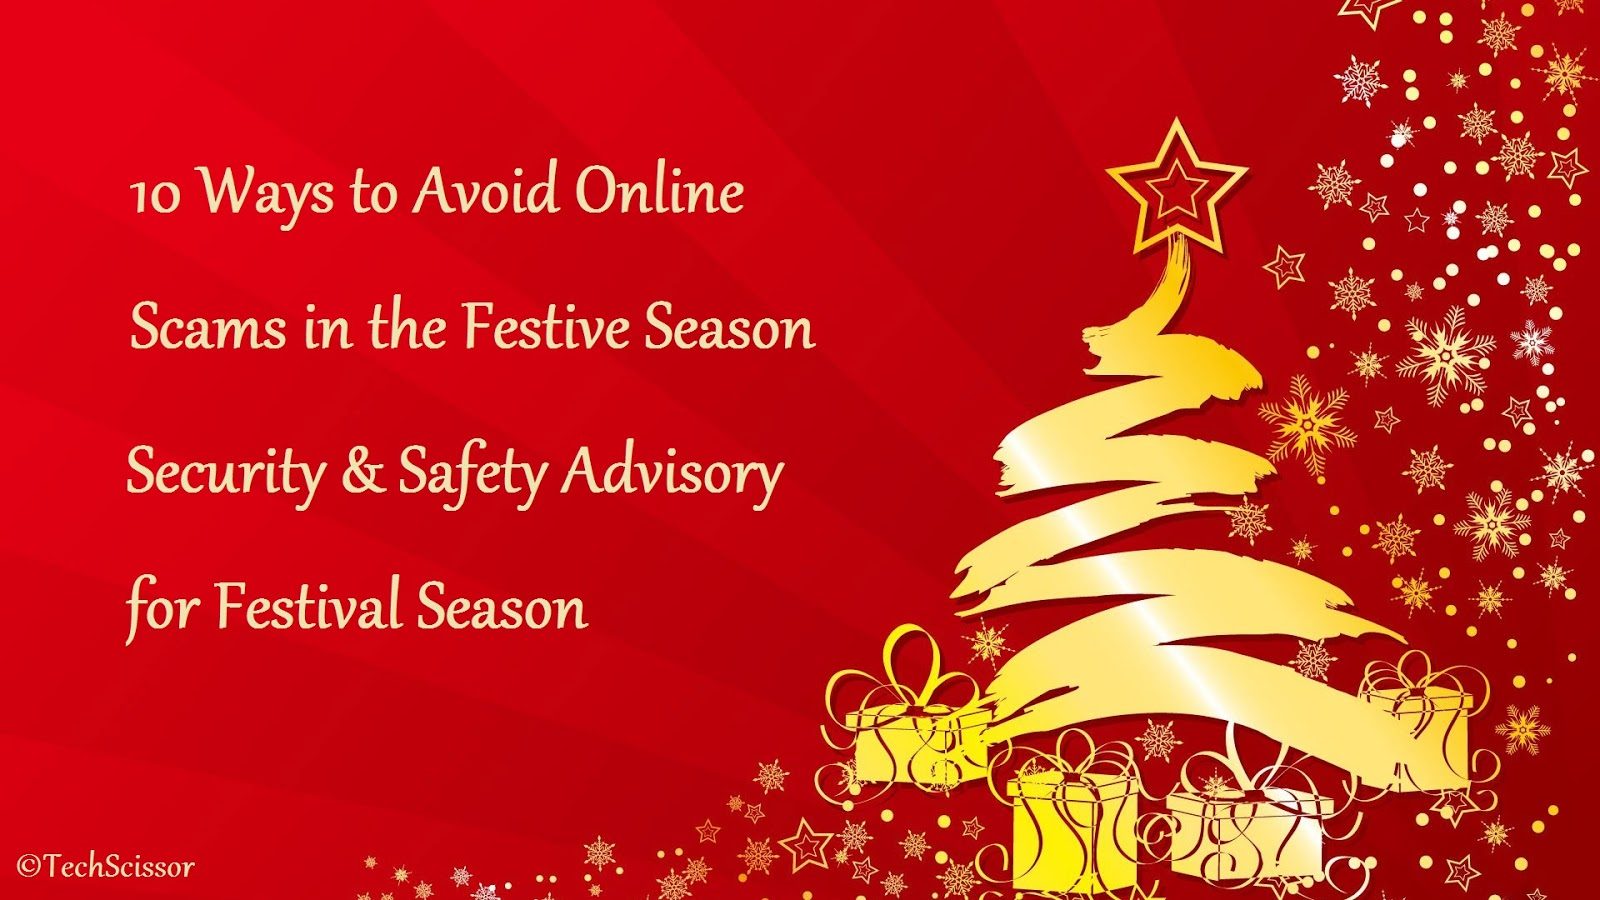 10 Ways to Avoid Online Scams in the Festive Season